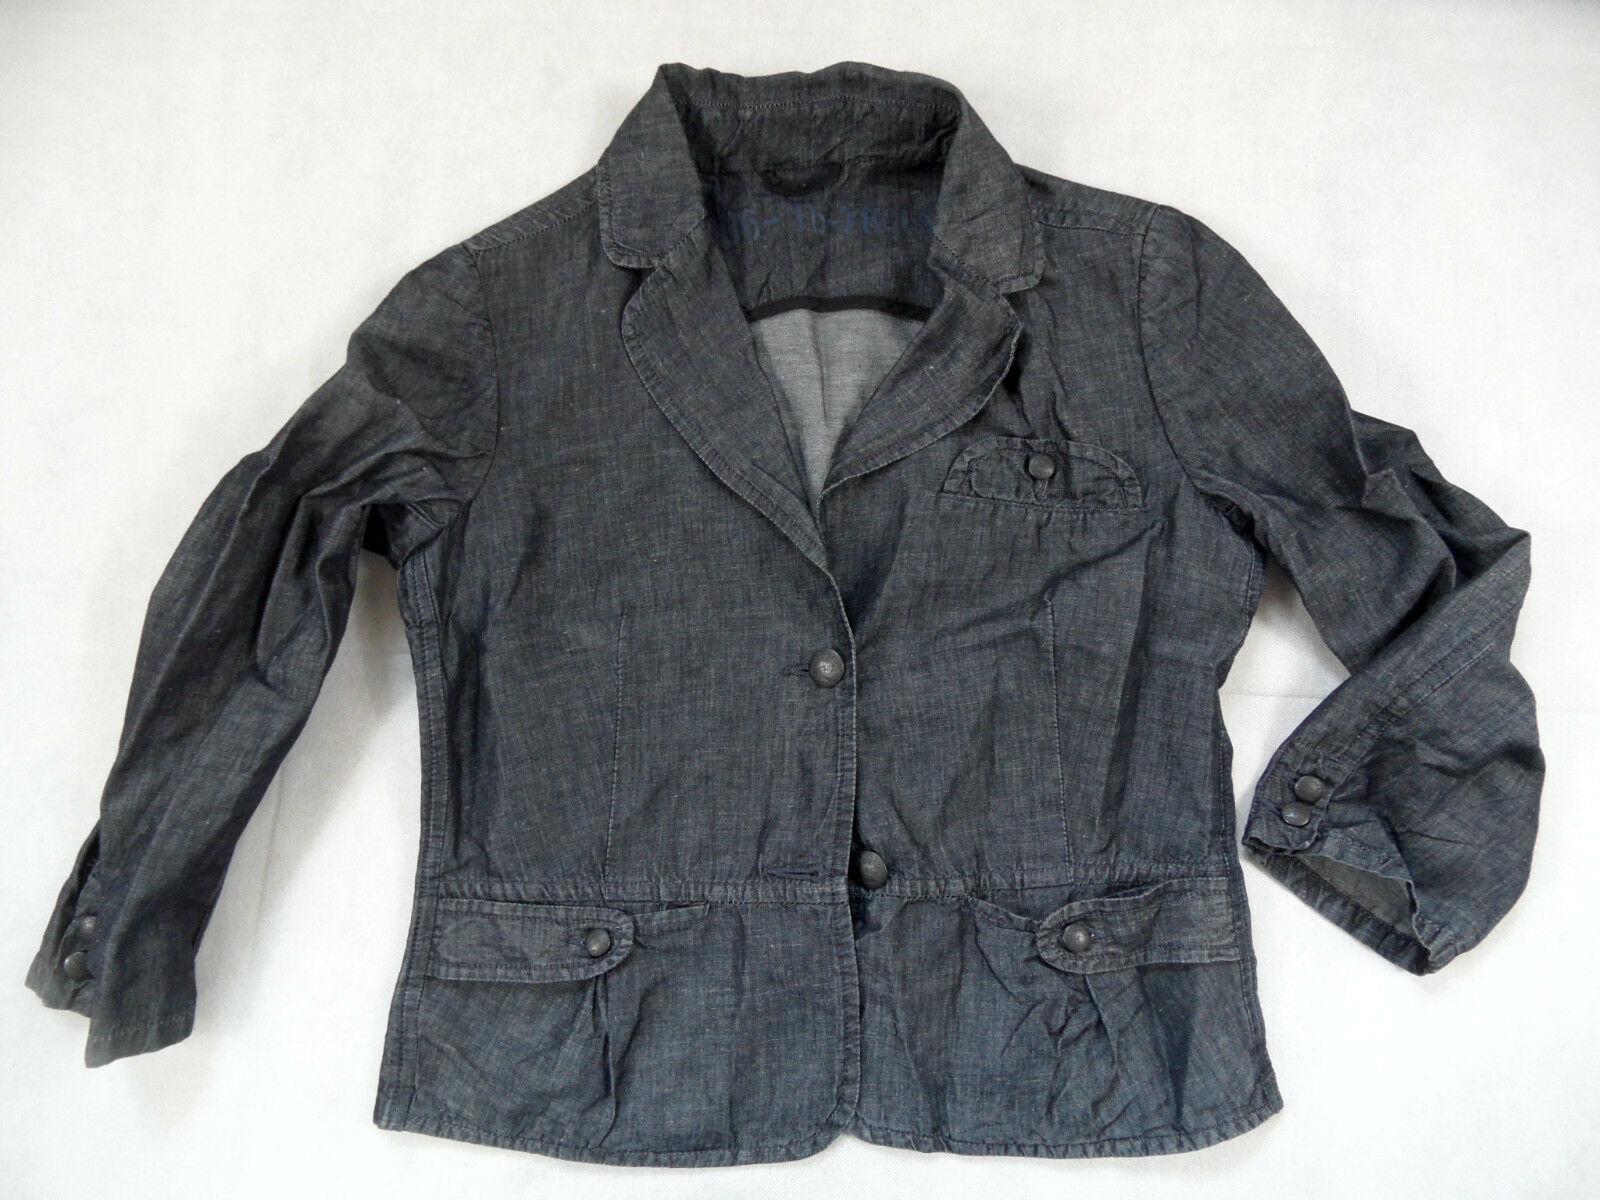 CLOSED leichter dark Blau Jeansblazer DELWYN Gr. S TOP BI718